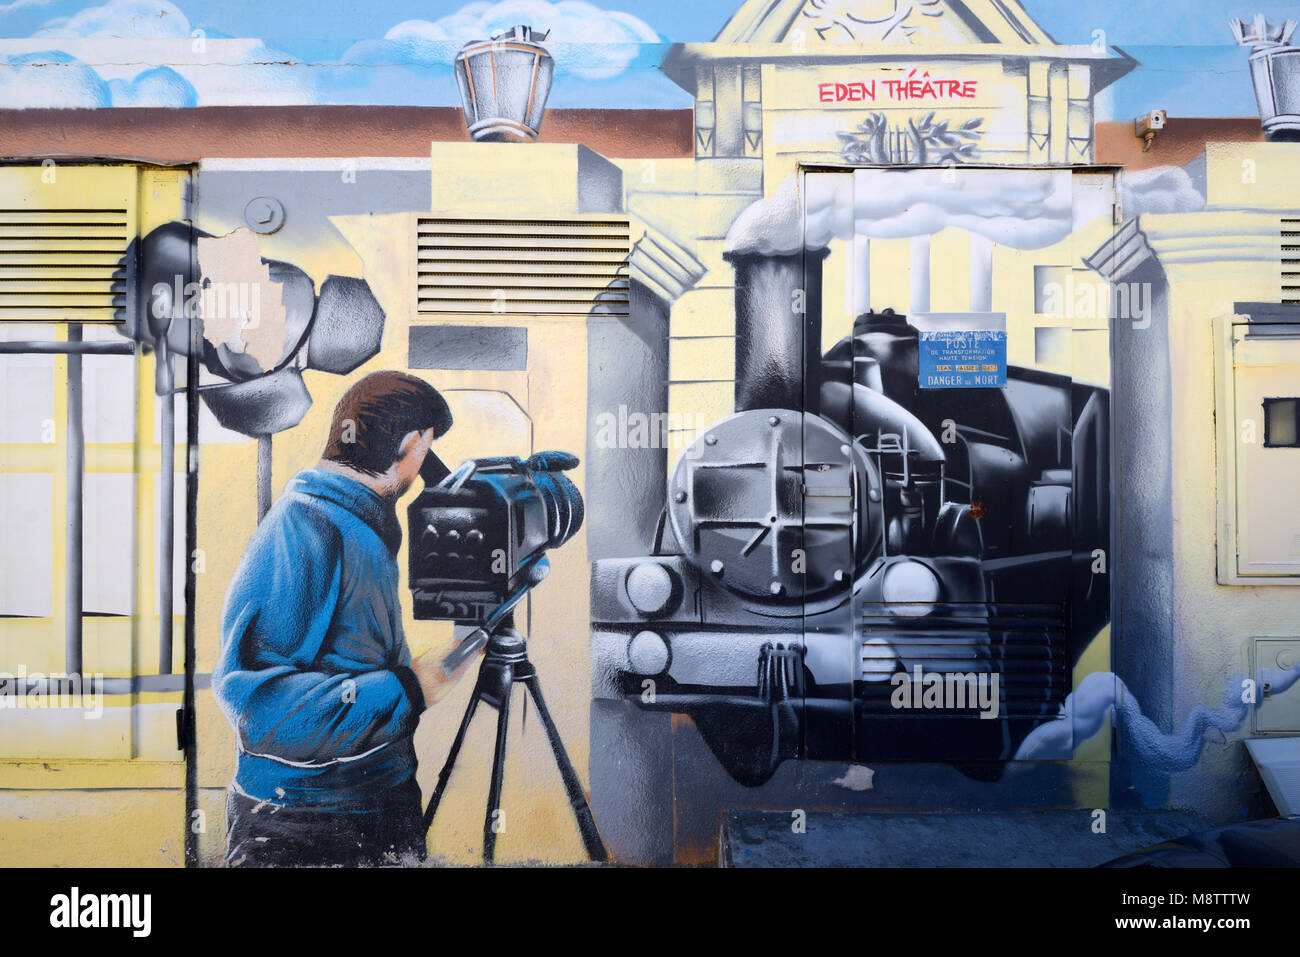 Painting of Steam Train, Eden Theatre, from of Early Movie 'Arrival of a train at La Ciotat' filmed by the - Stock Image